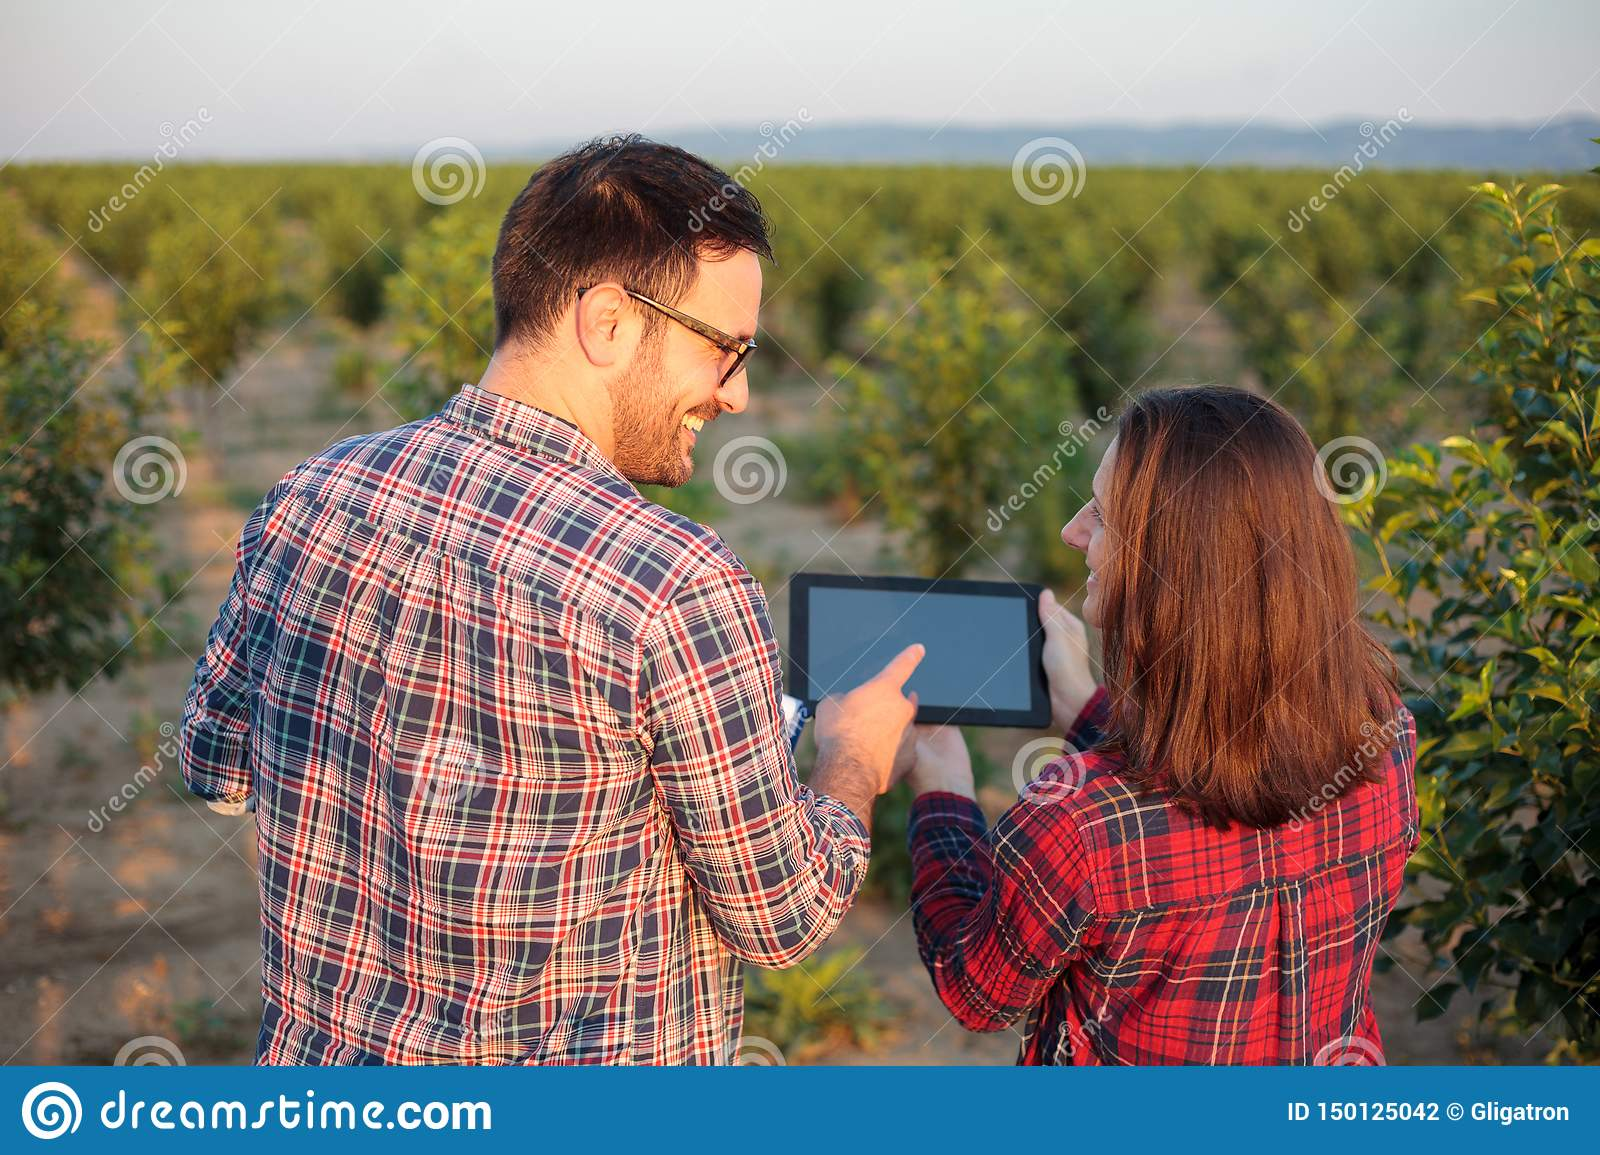 Smiling young male and female agronomists and farmers inspecting young fruit orchard, using tablet